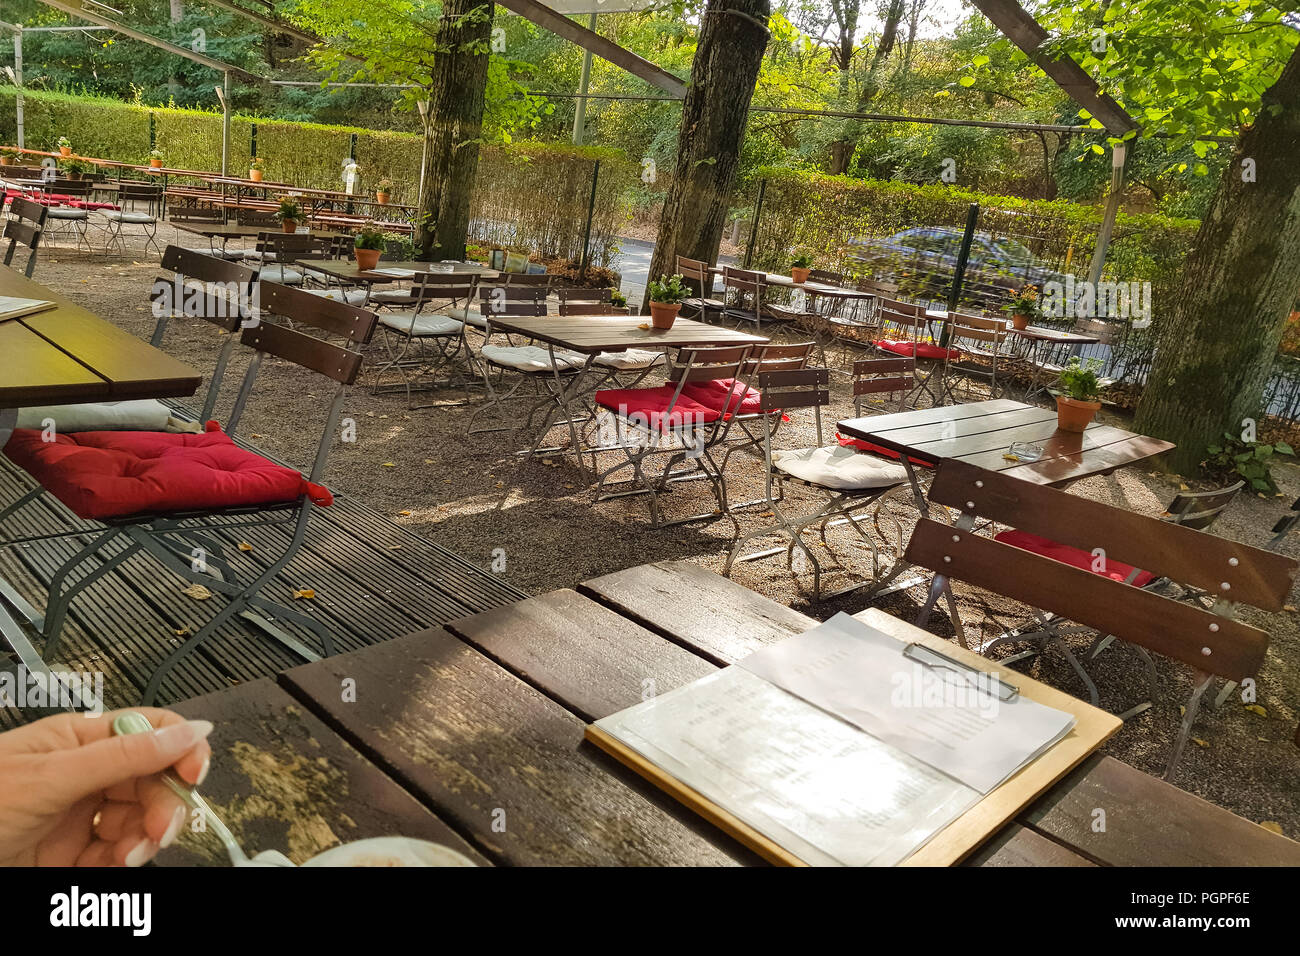 A large and traditional beer garden in Munich. Popular with locals and tourists. - Stock Image